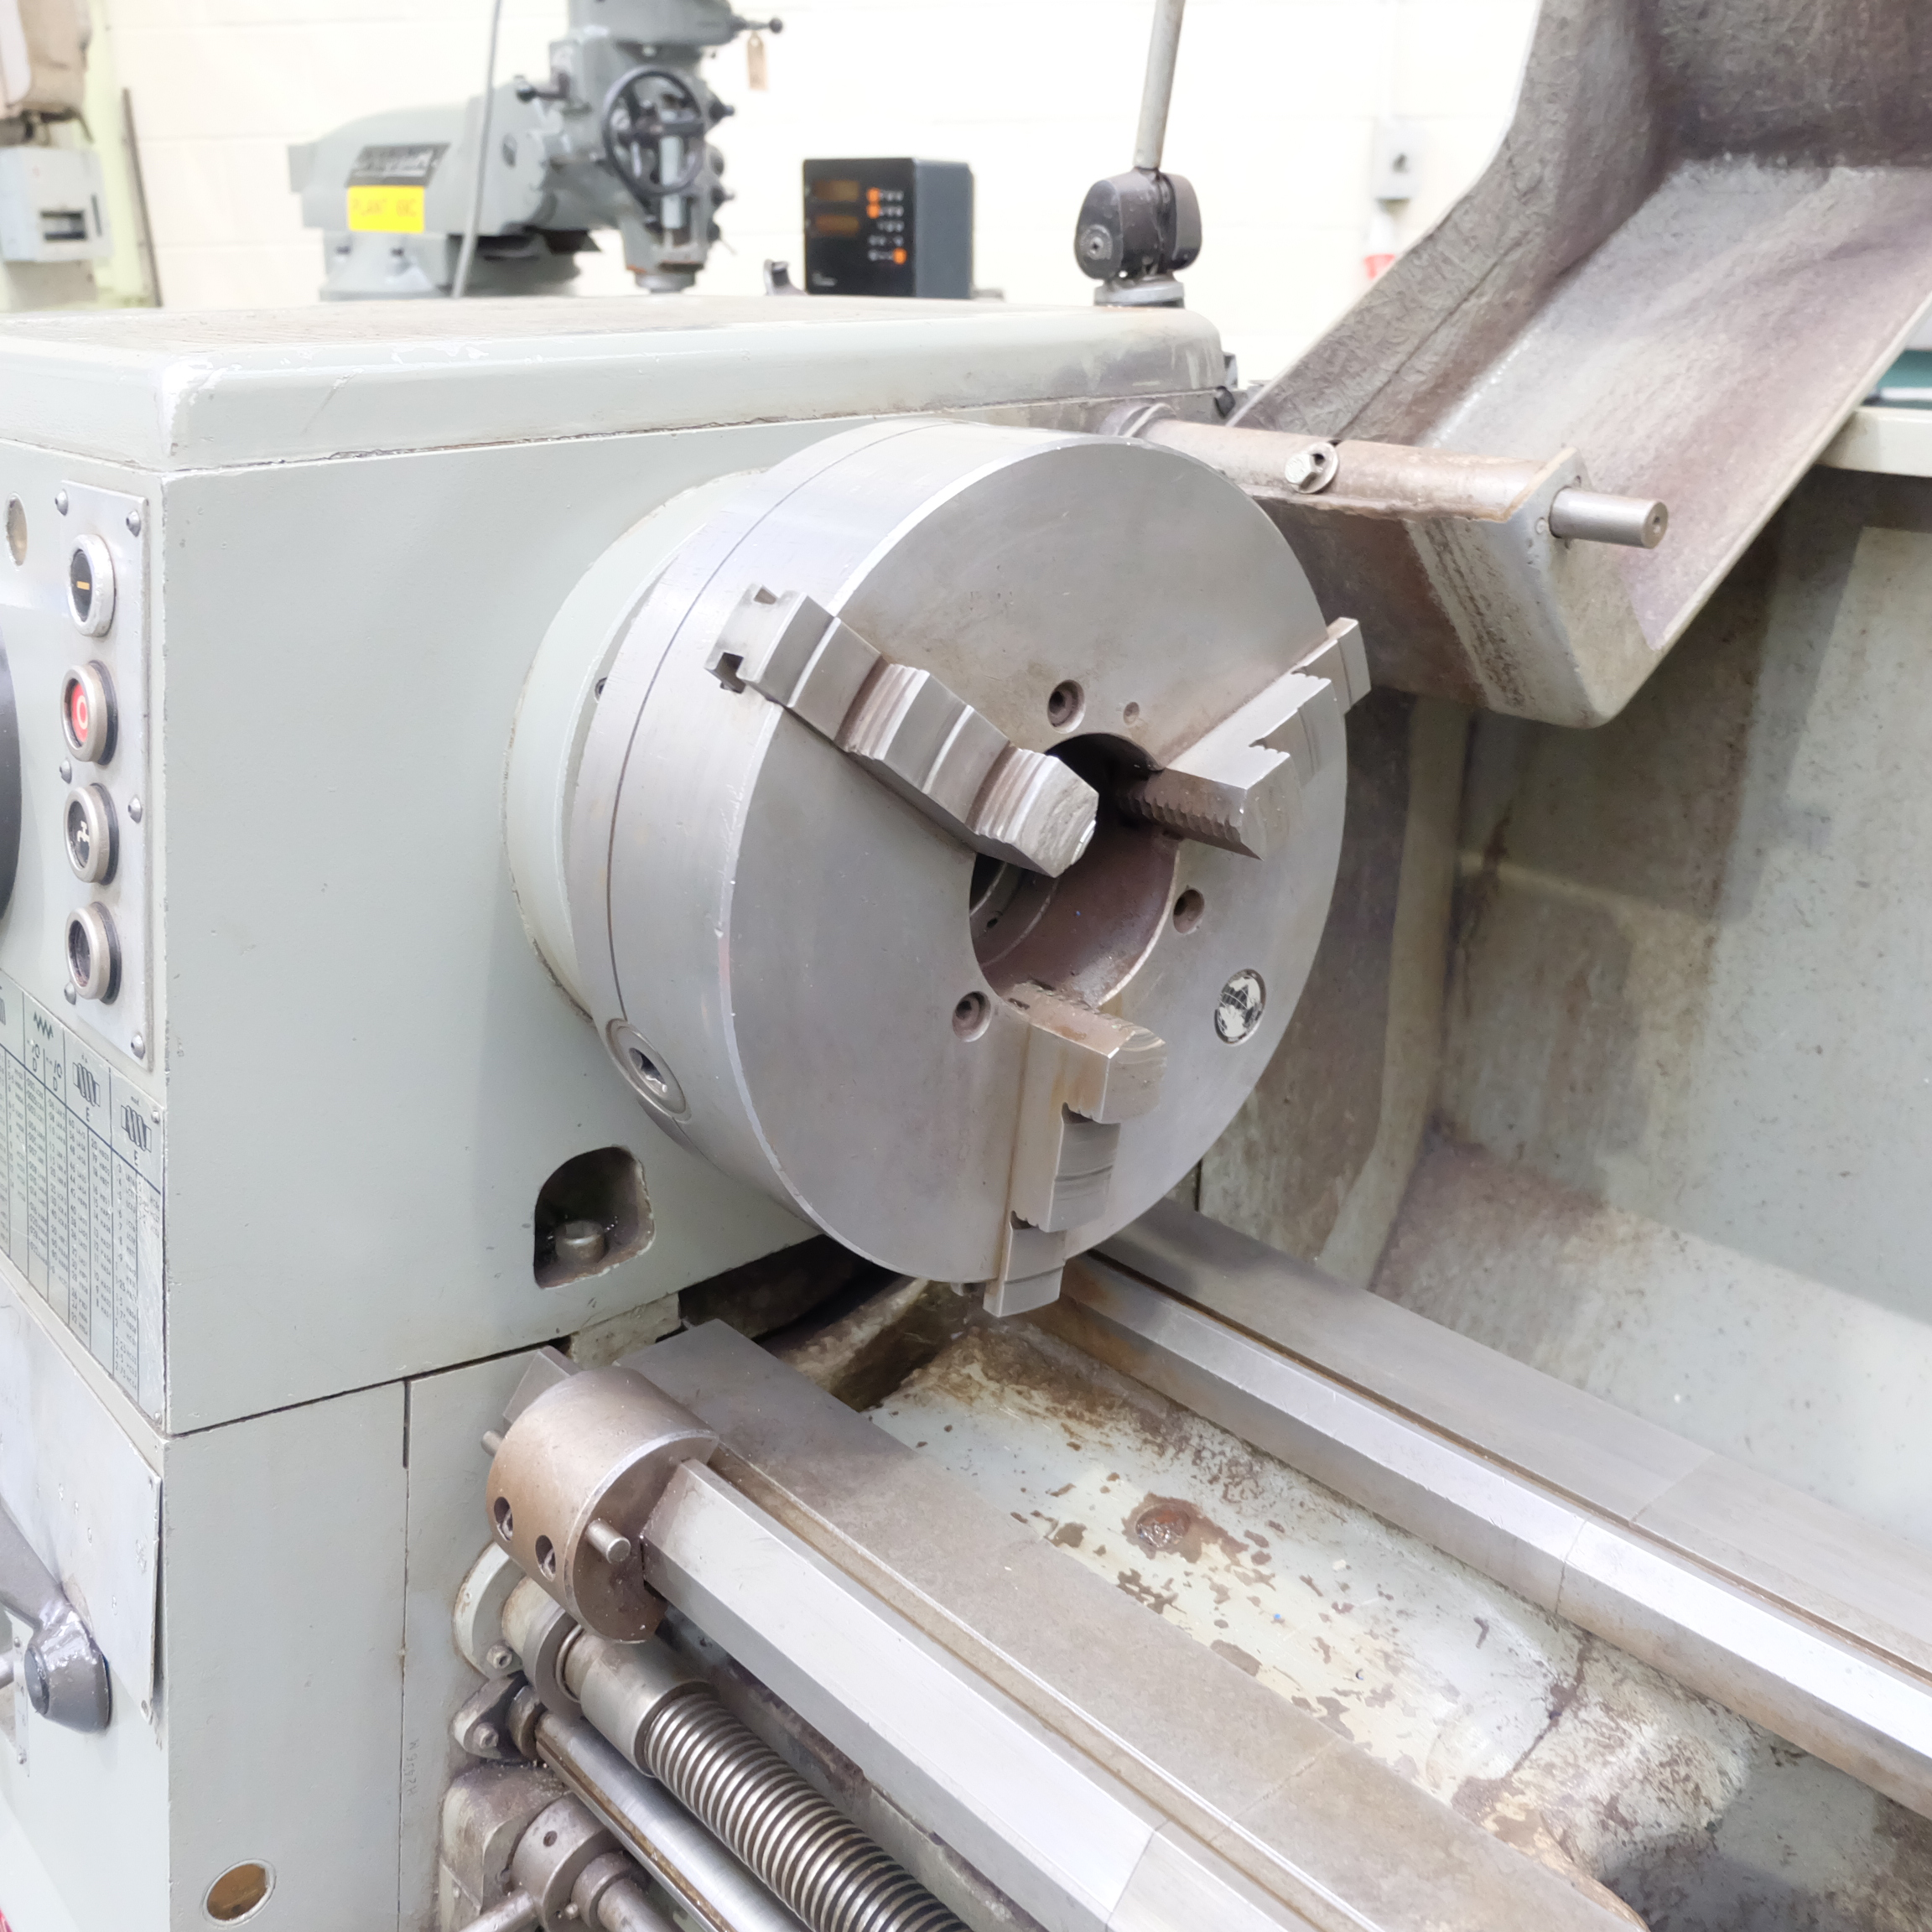 Colchester Mascot 1600 Gap Bed Centre Lathe. - Image 5 of 10